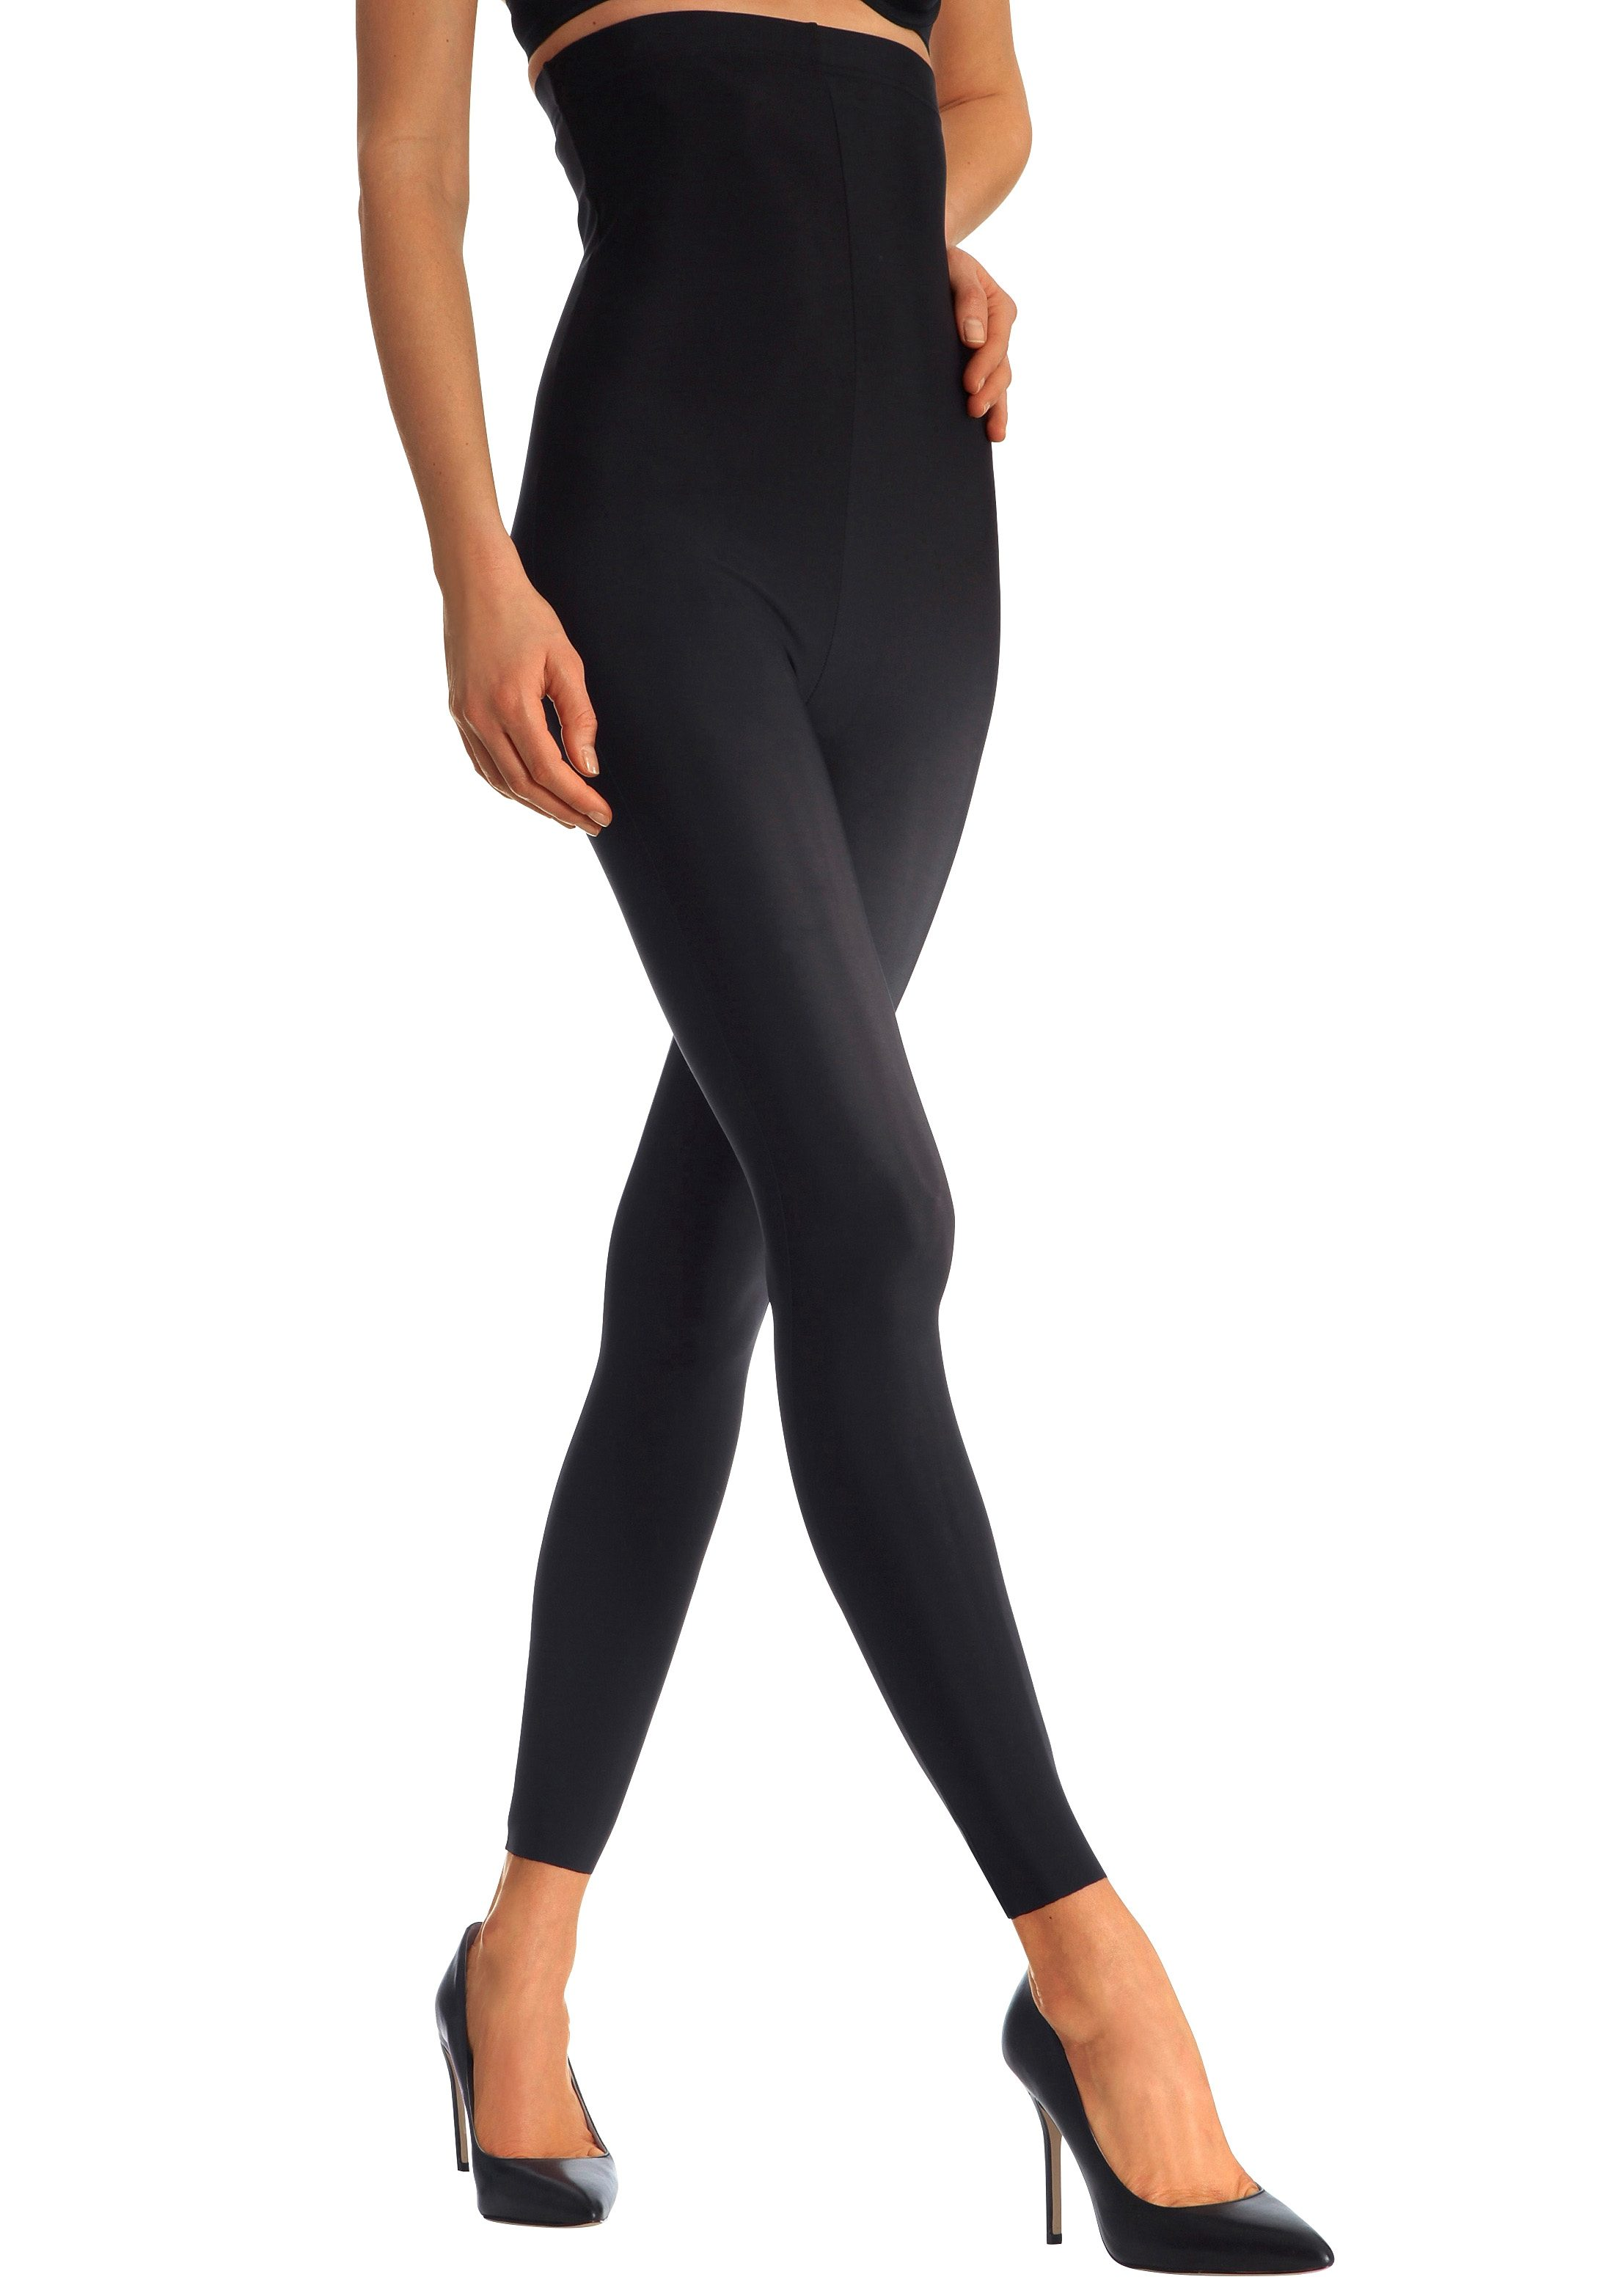 LASCANA Bauchweg-Leggings High Waist